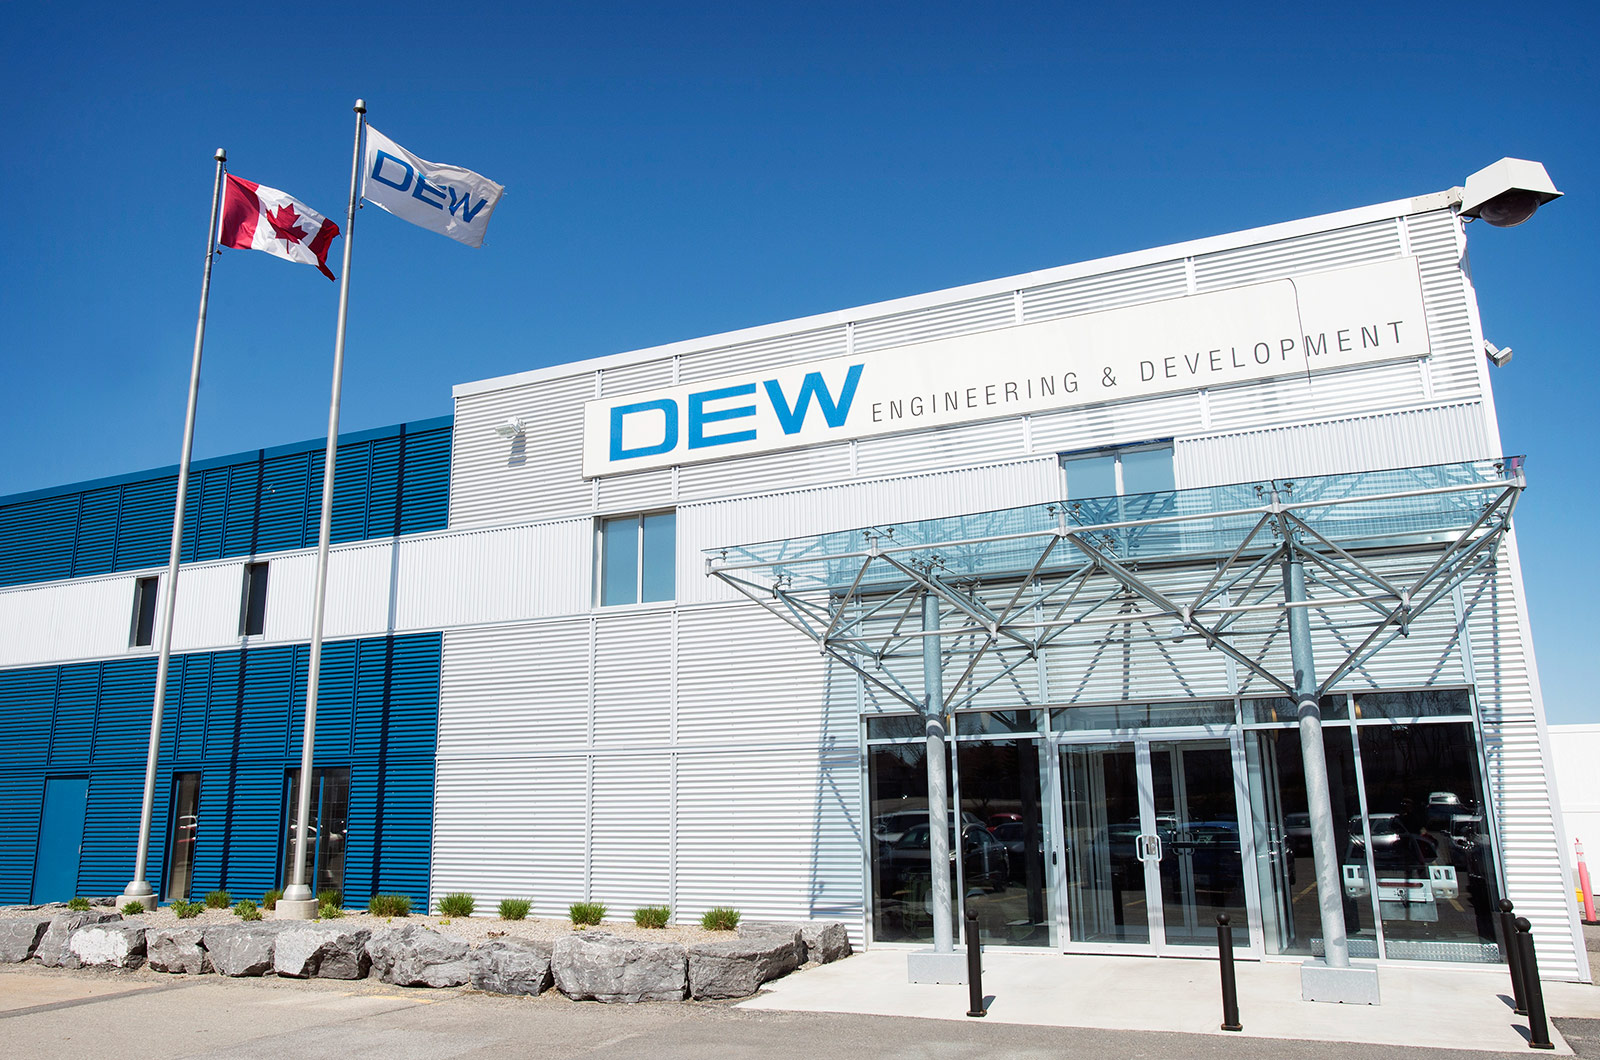 Dew Facility In Ottawa On Canada Dew Engineering And